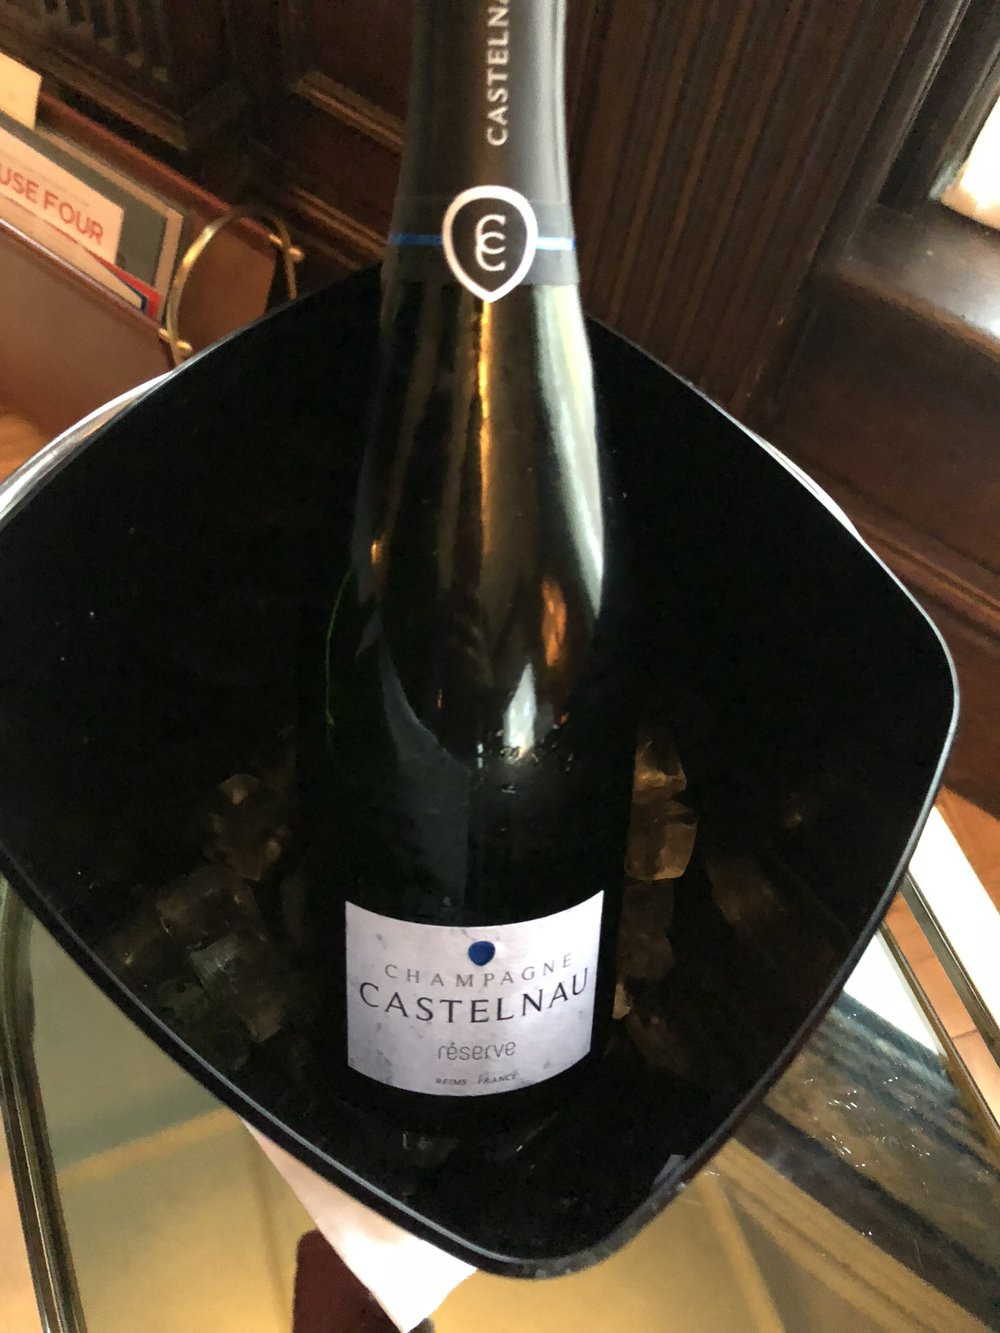 Chilled bottle of Champagne Castelnau Brut Reserve (Credits: Sumi Sarma)